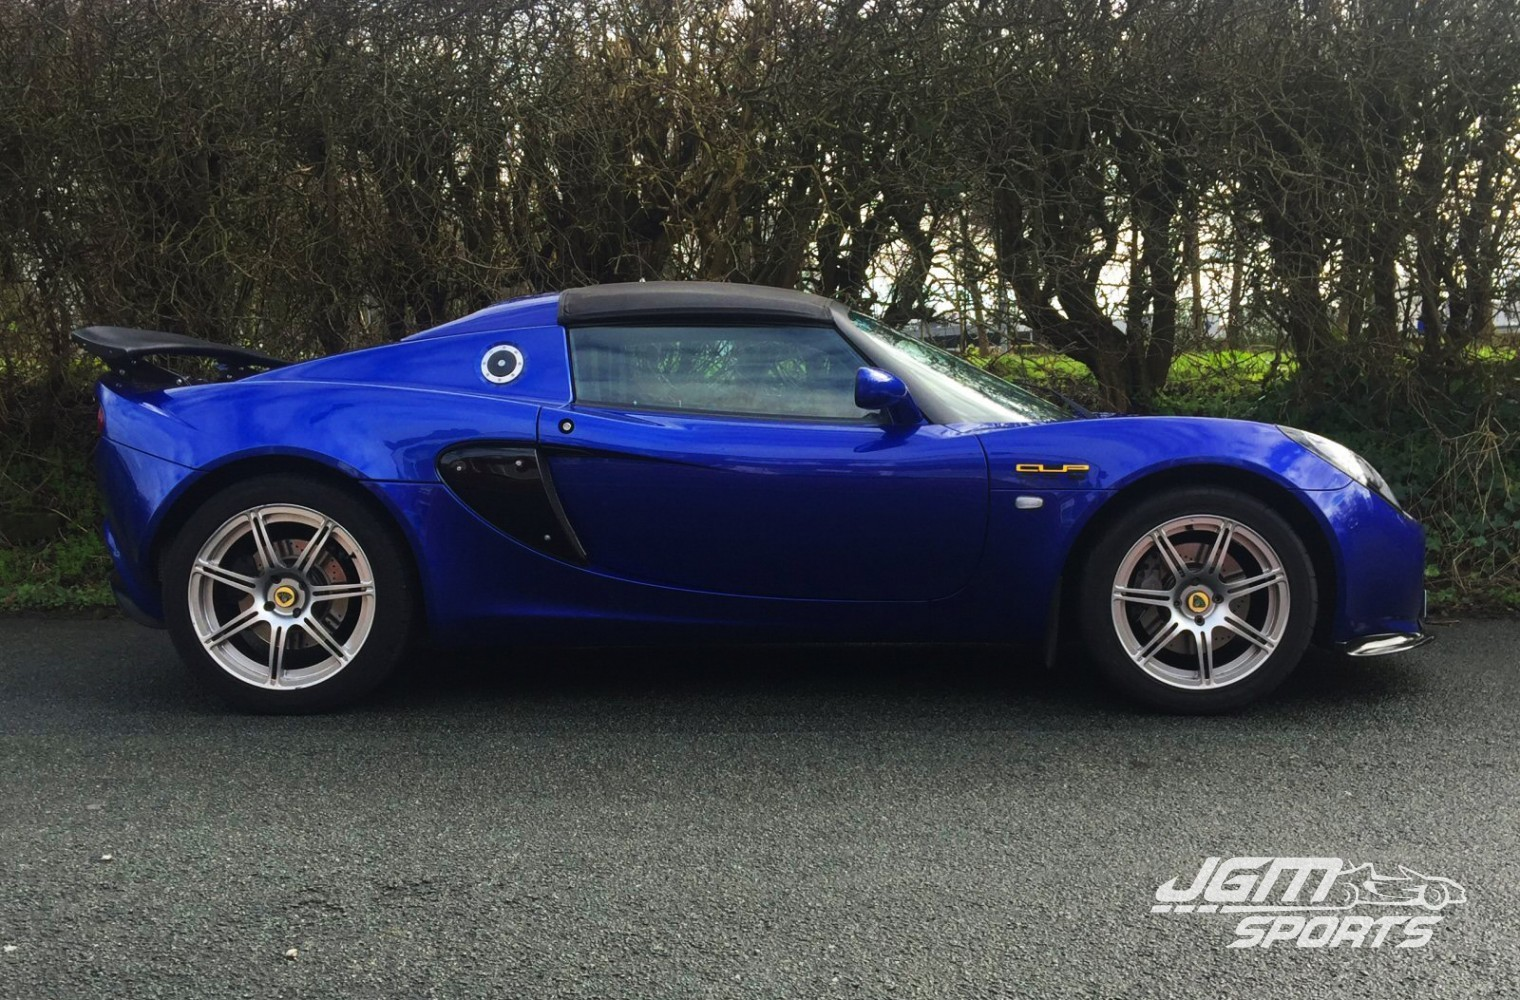 2007 S2 Lotus Elise S Only 13k Miles With Exige Forged